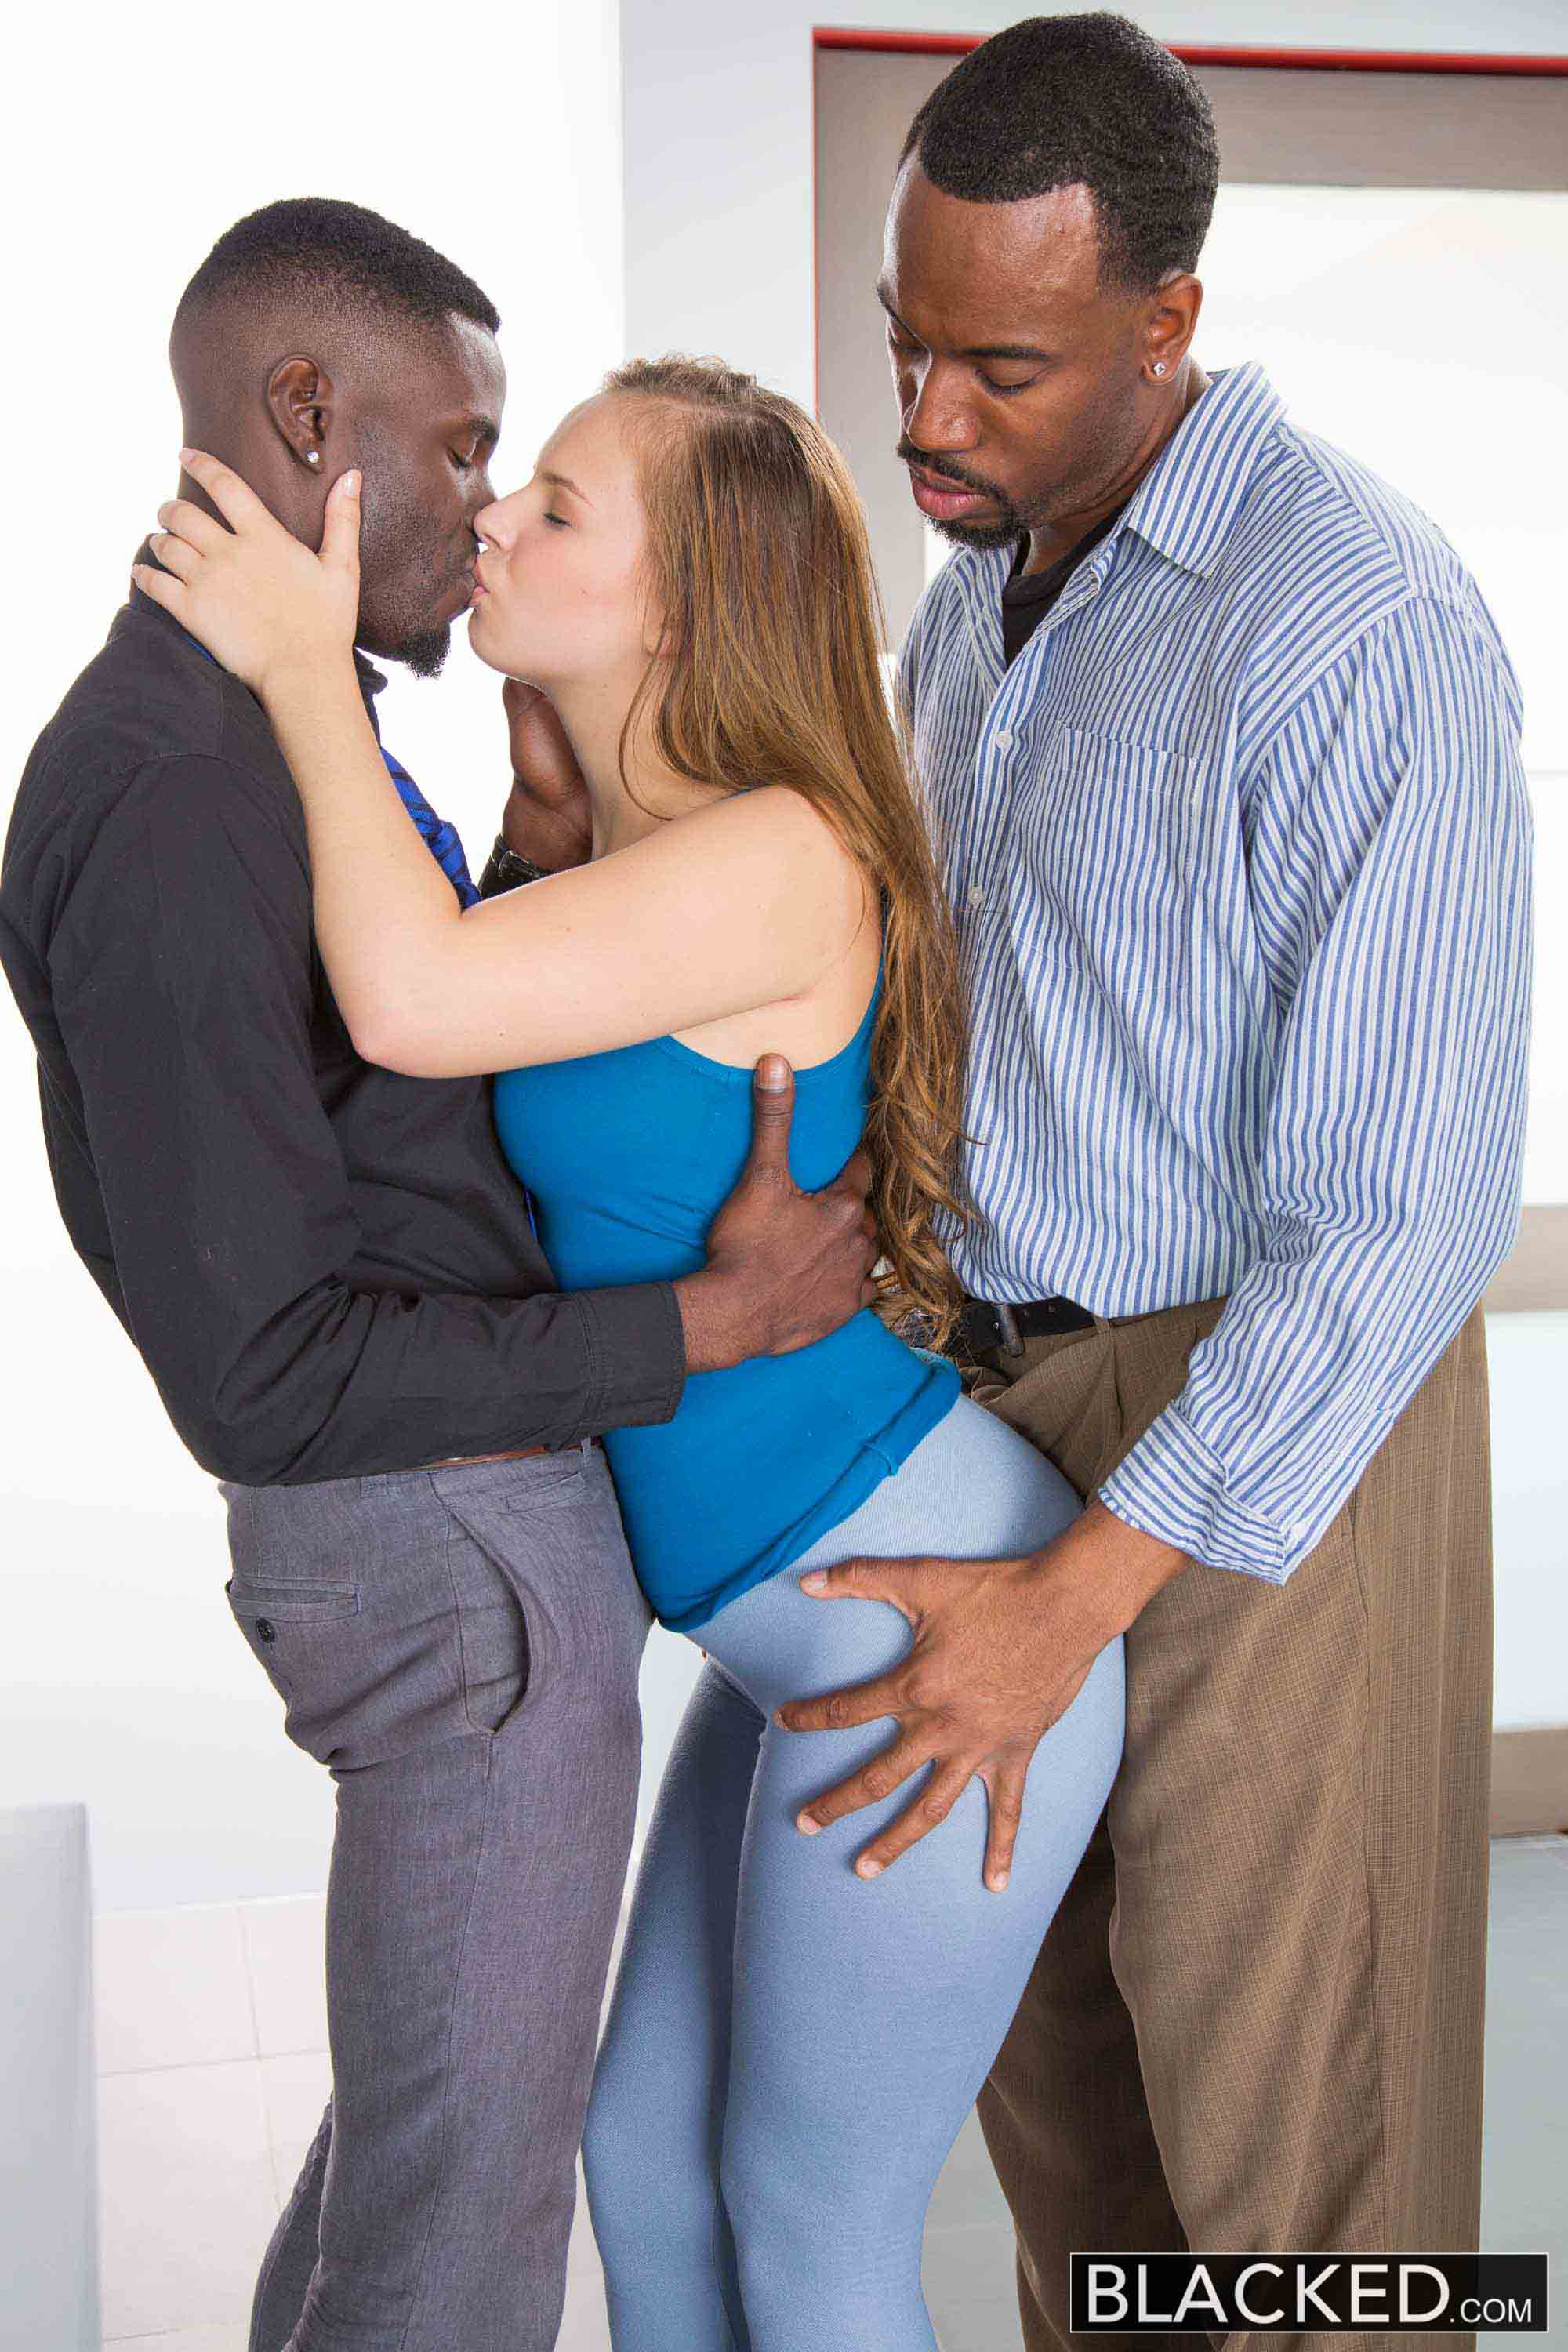 Sorry, Jillian janson minnesota interracial threesome apologise, can